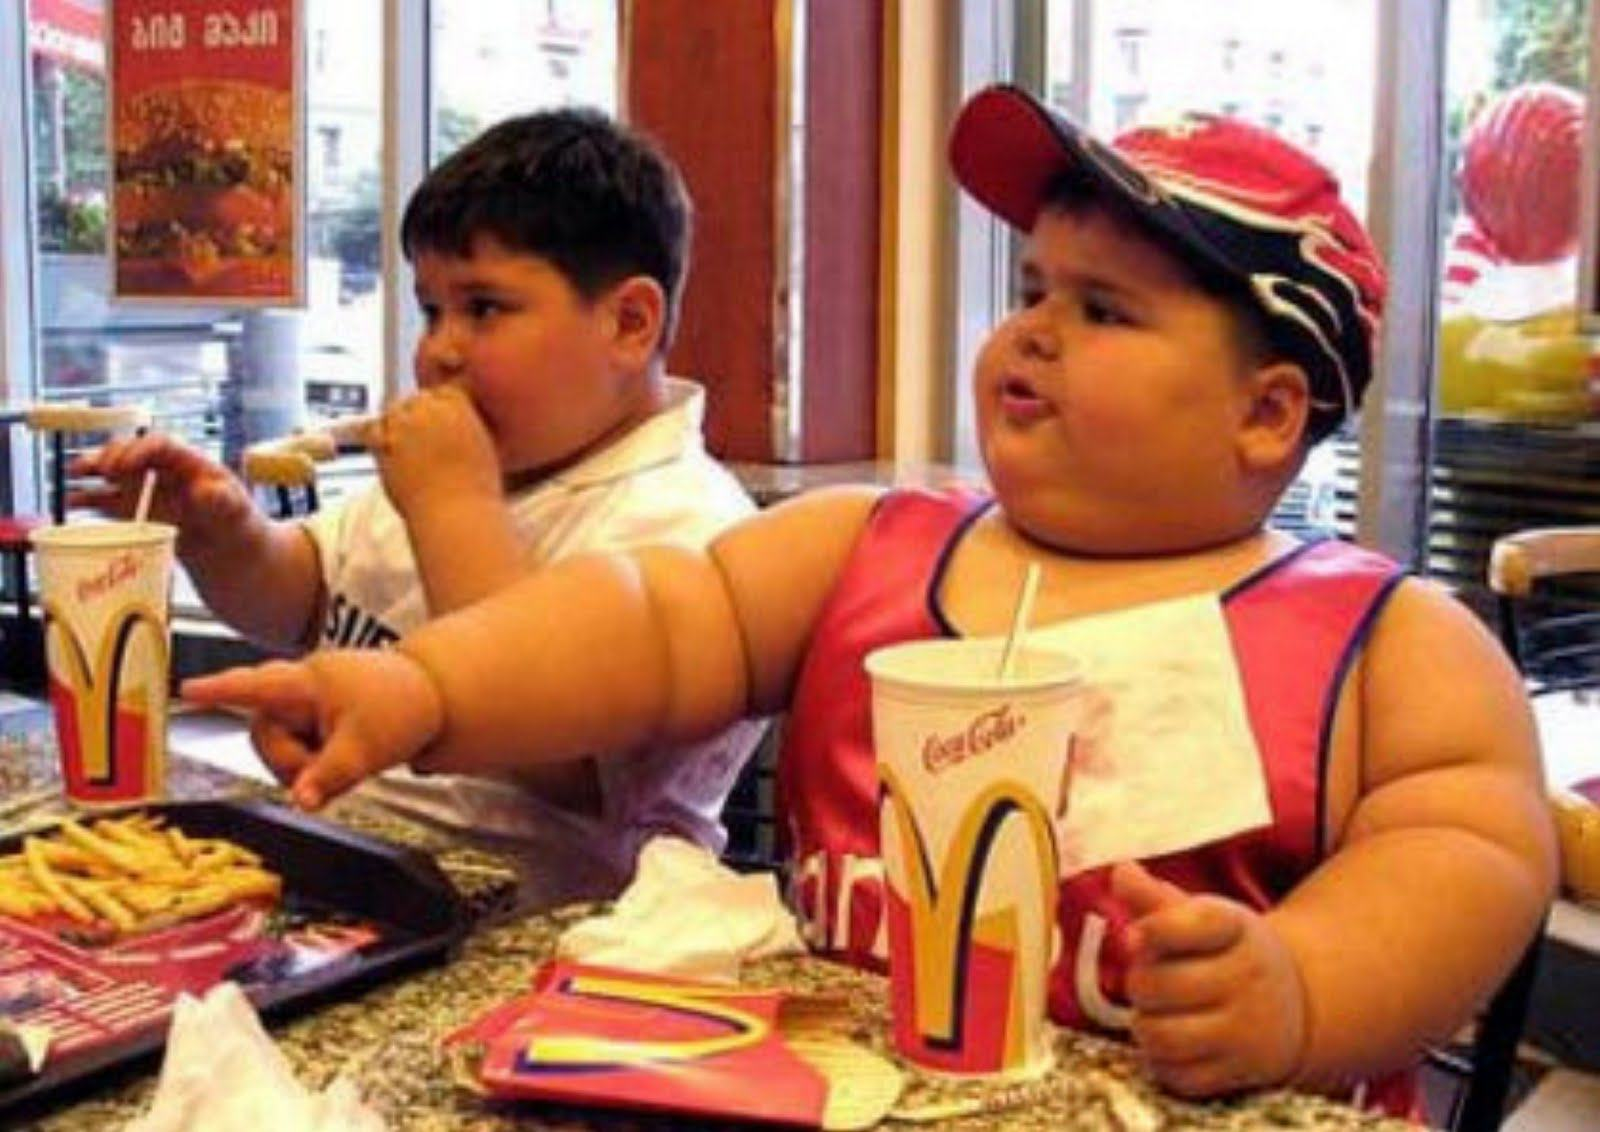 UNILAD fat kid mcdonalds 769134 76947175651 McDonalds Is Facing Its Final Days, According To Franchise Bosses